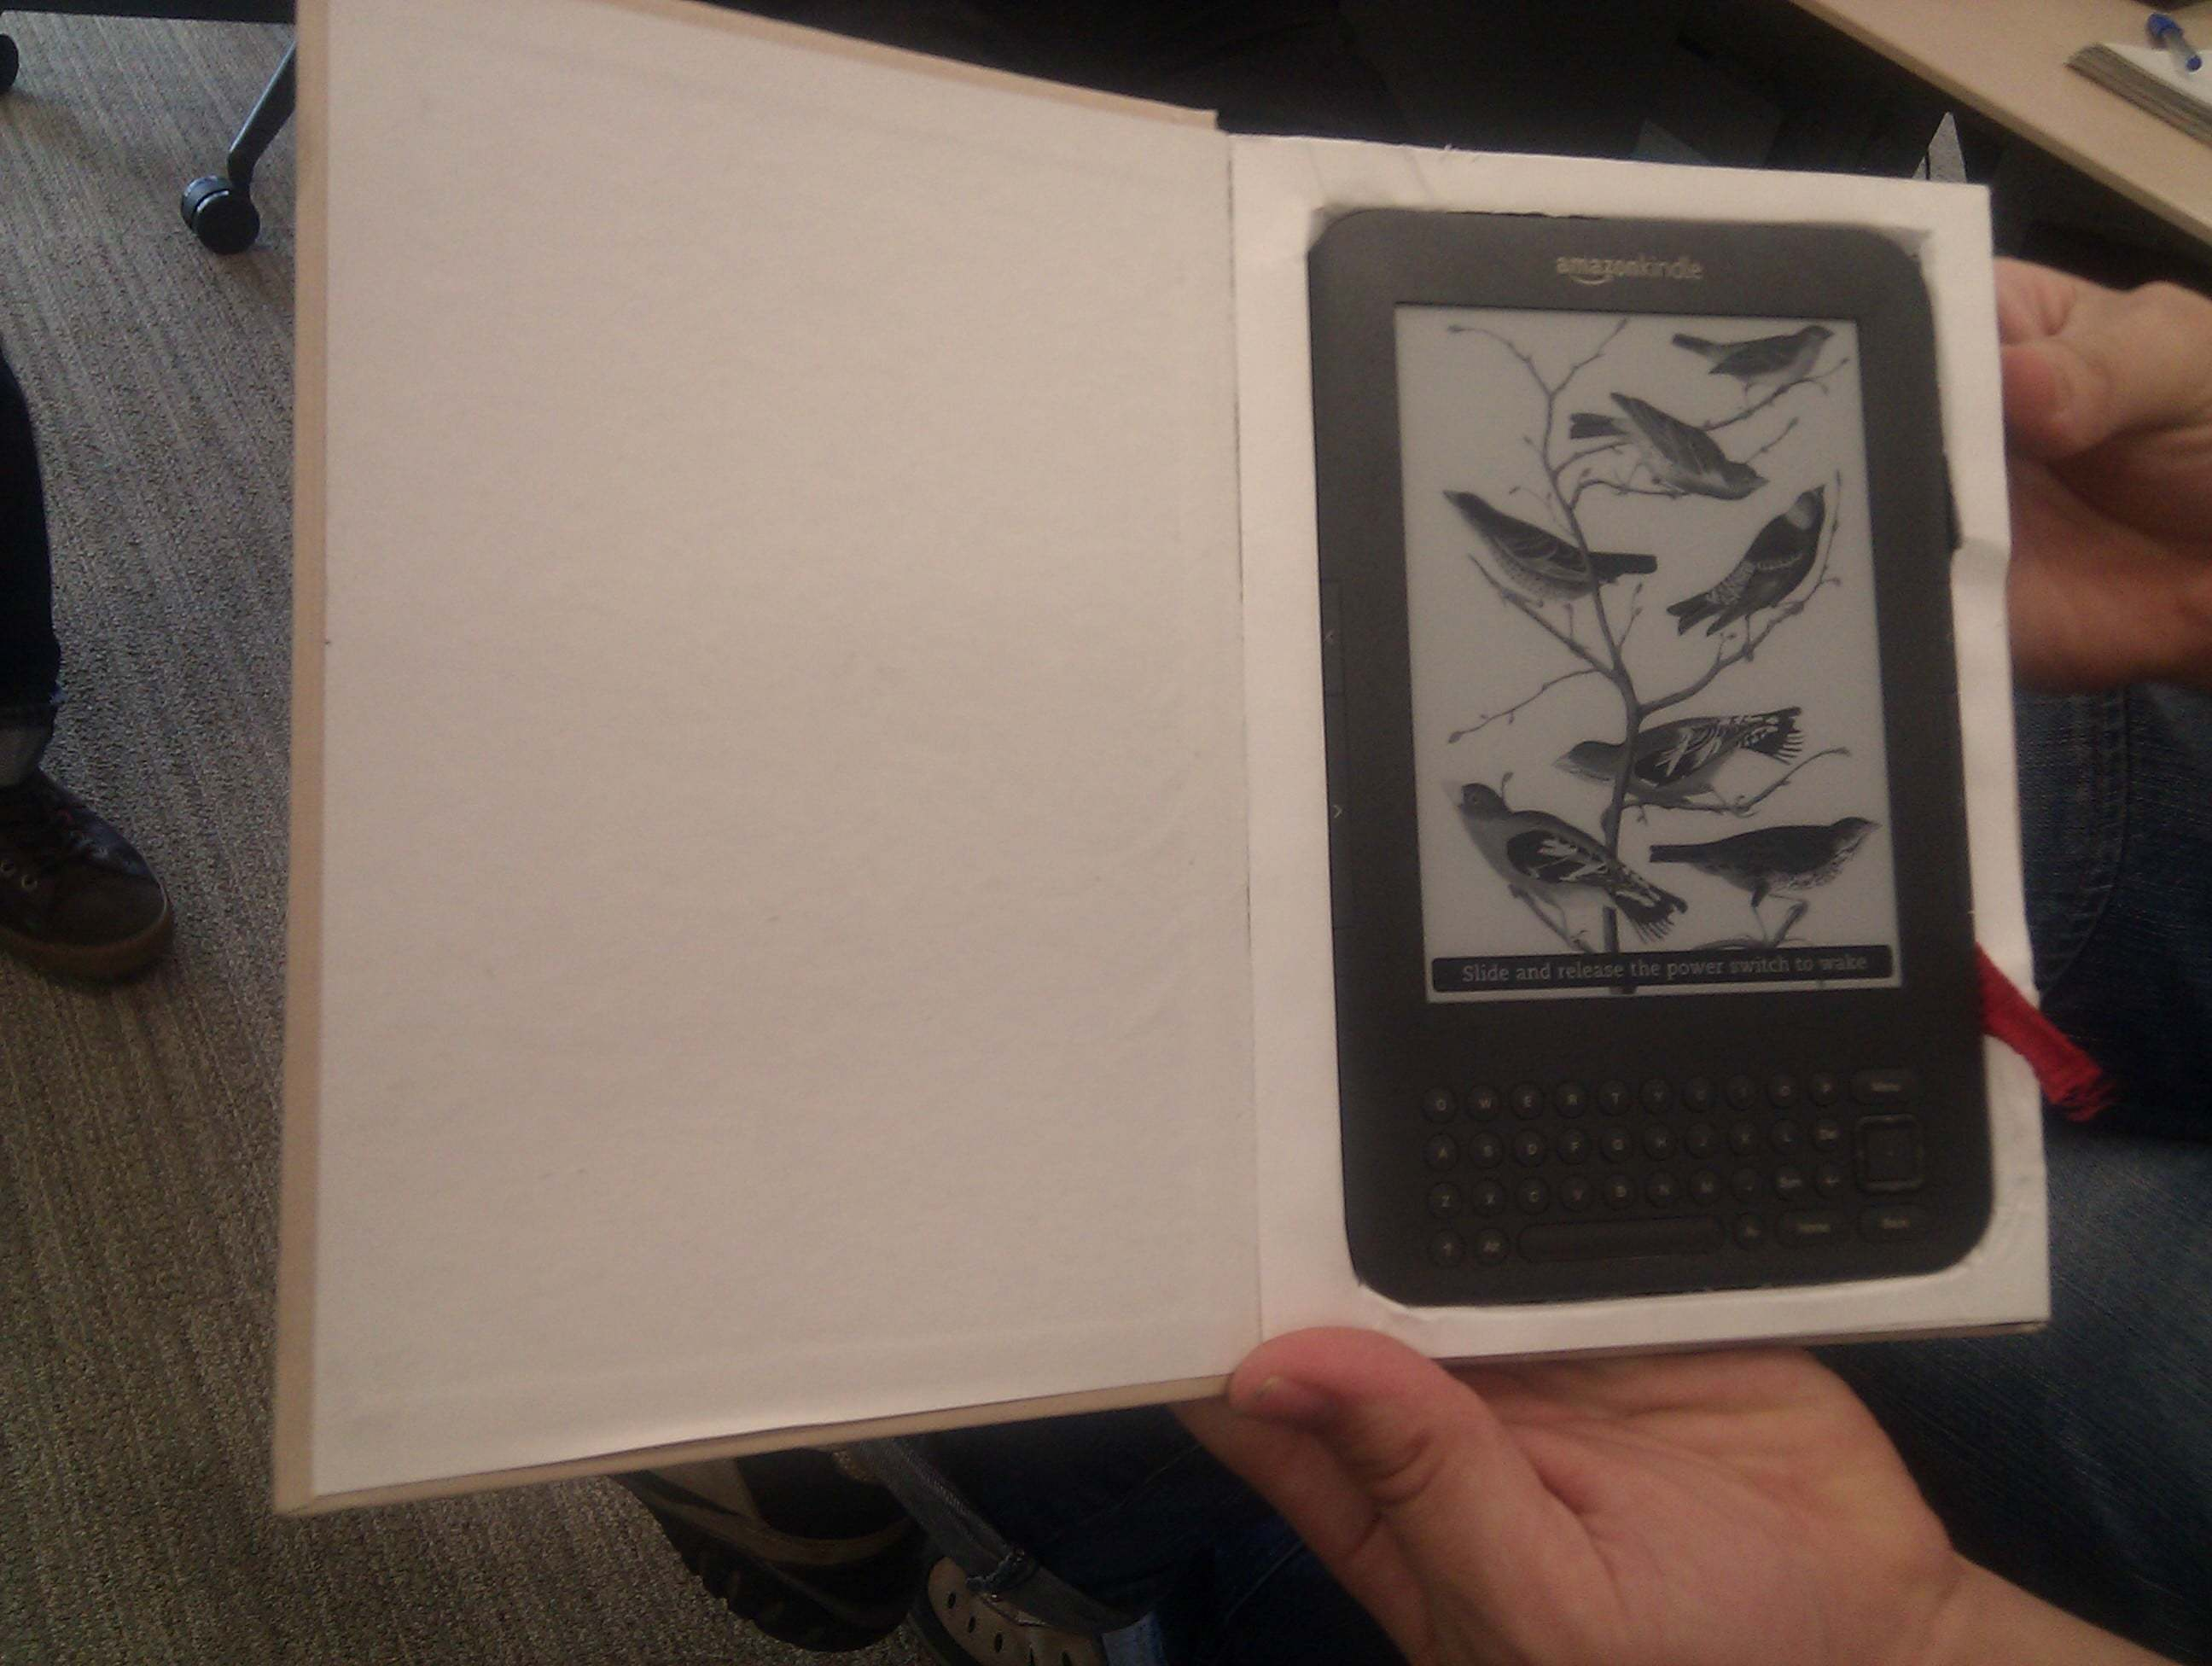 A Kindle nestled in a hollowed out paper book.